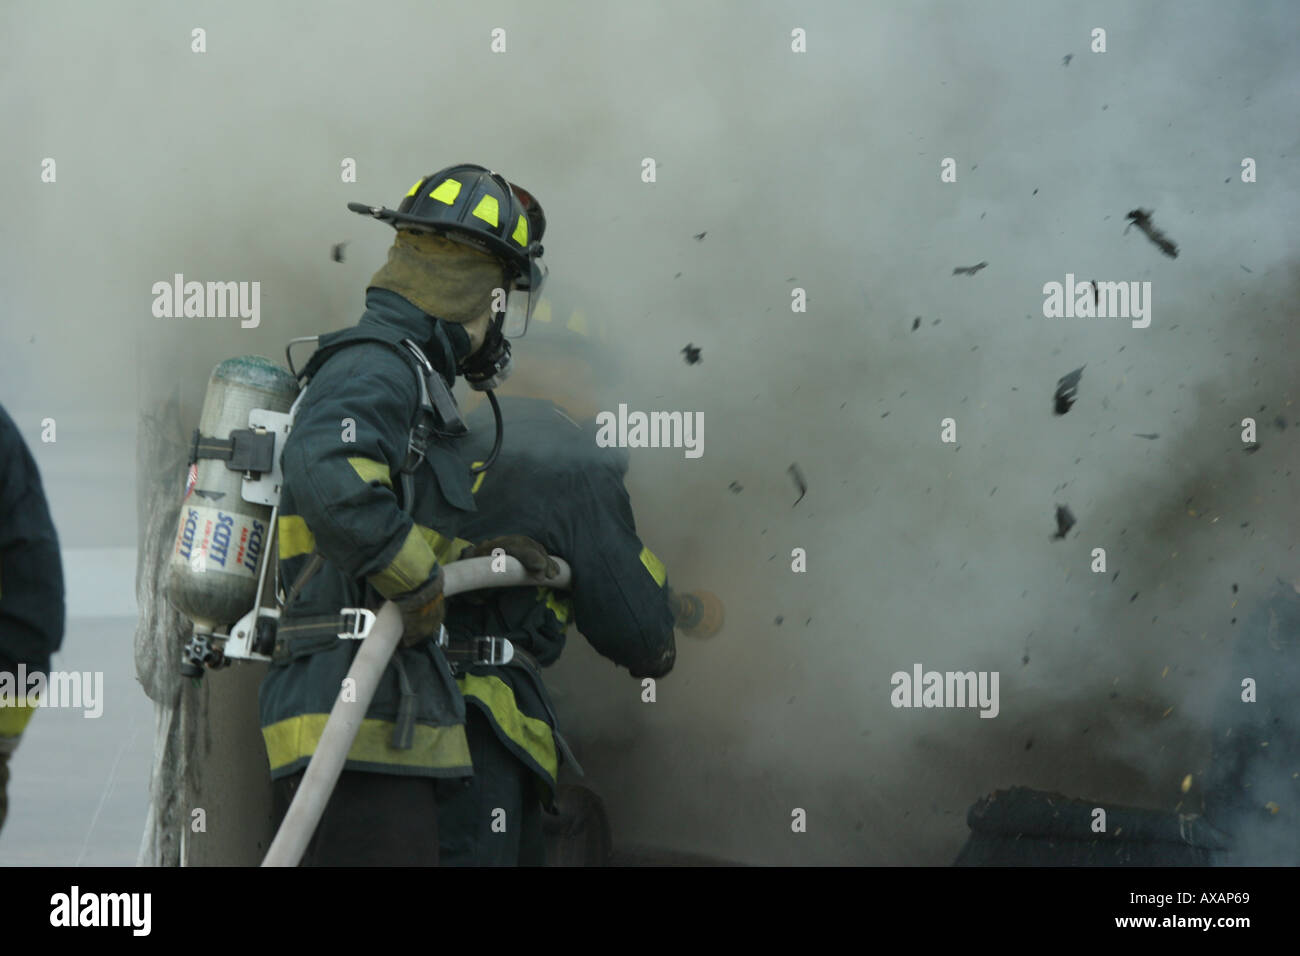 Fire fighters putting out fire in container with debris flying Stock Photo